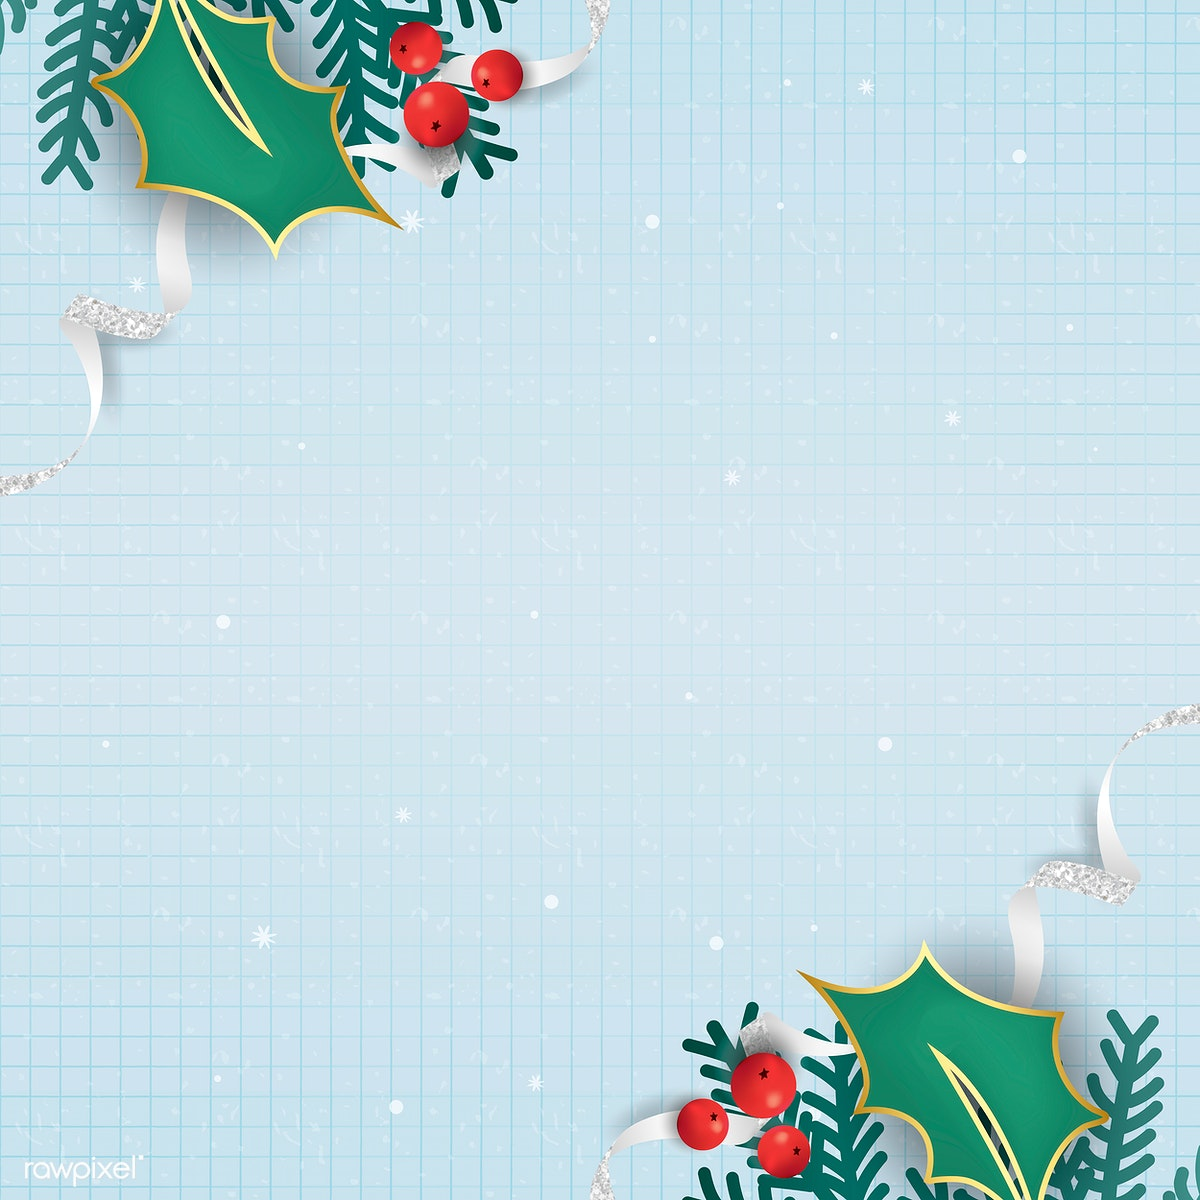 Christmas Background Vector.Download Premium Image Of Christmas Doodle On Light Blue Notepaper